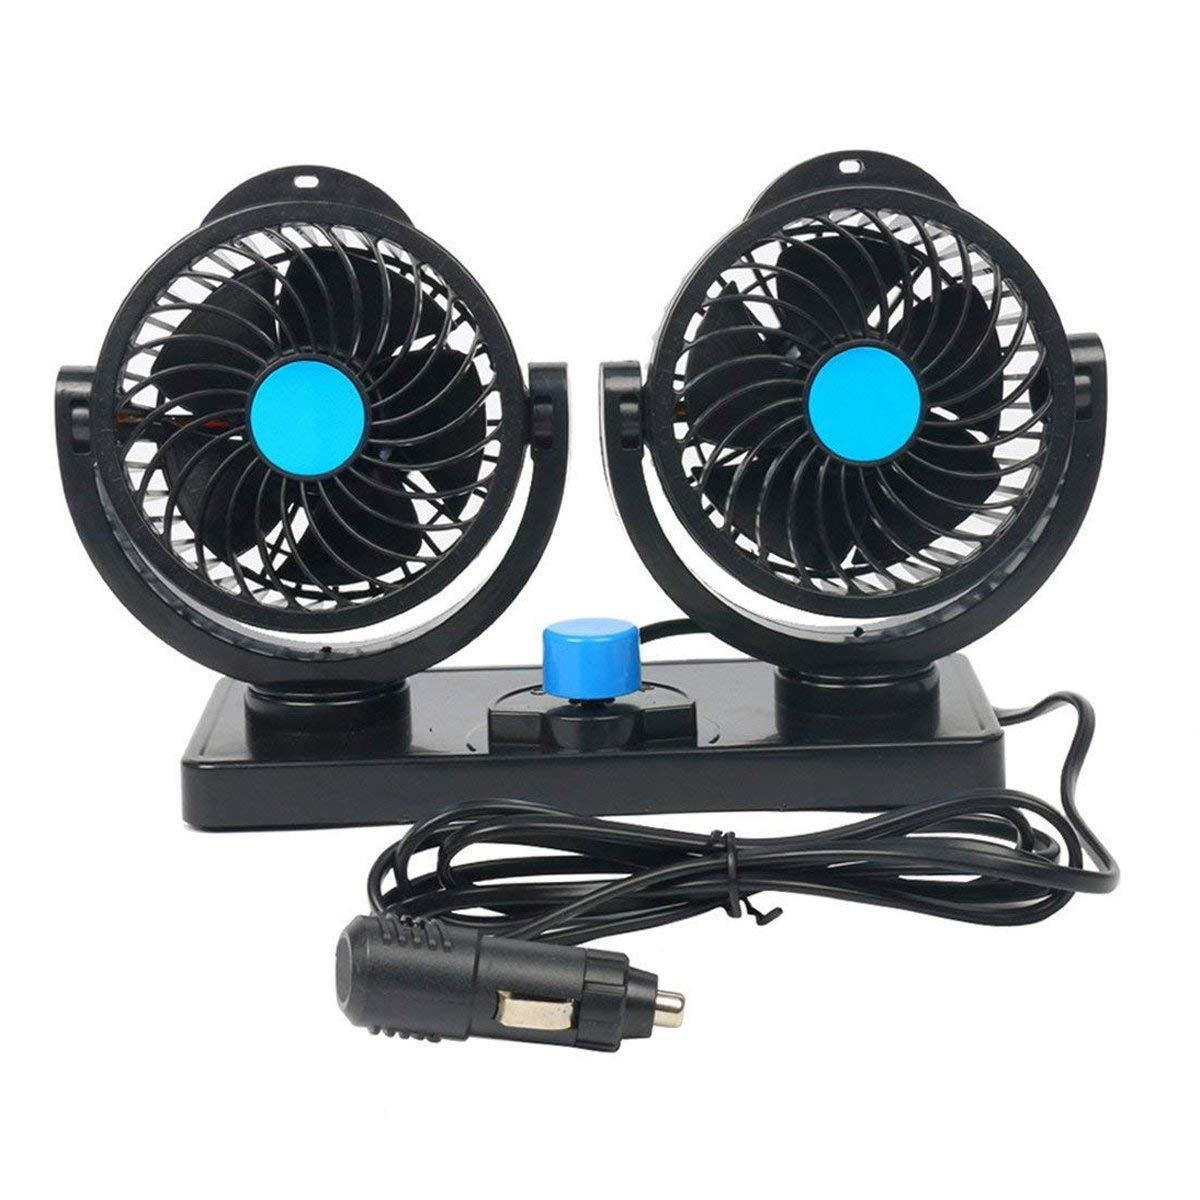 FreeTec 360 Rotating Free Adjustment 12V Car Fan - Dual Head Car Auto Cooling Air Fan Powerful Low Noise 2 Speed Rotatable Ventilation Dashboard Electric Vehicle Car Fans Summer Cooling Air Circulator freebirdtrading FT0123